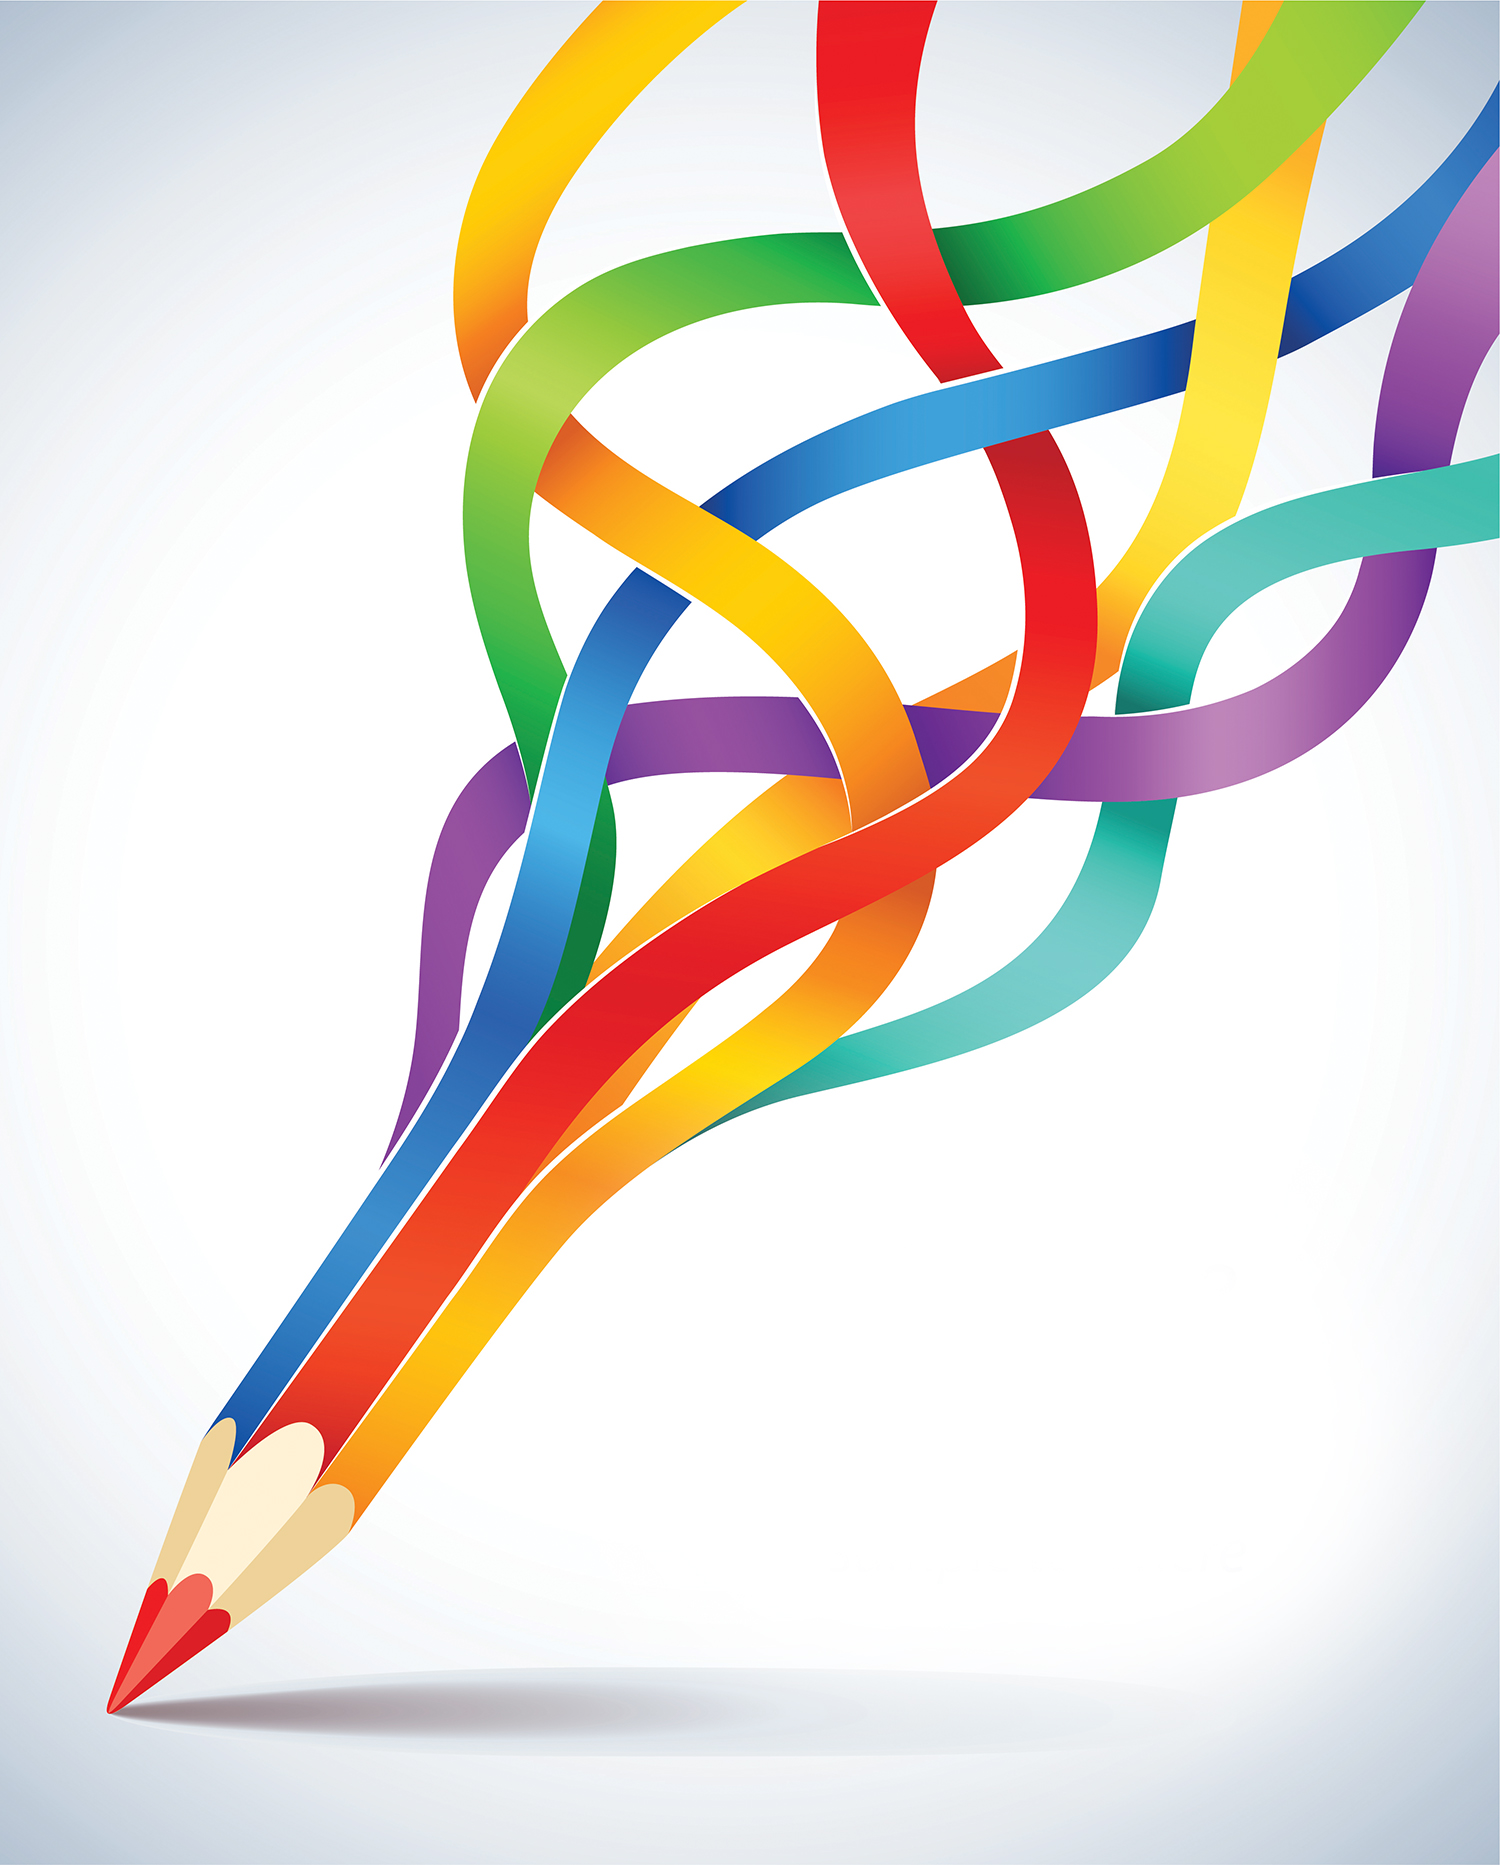 creative vector pencil concept colors flowing illustrations creation found travel